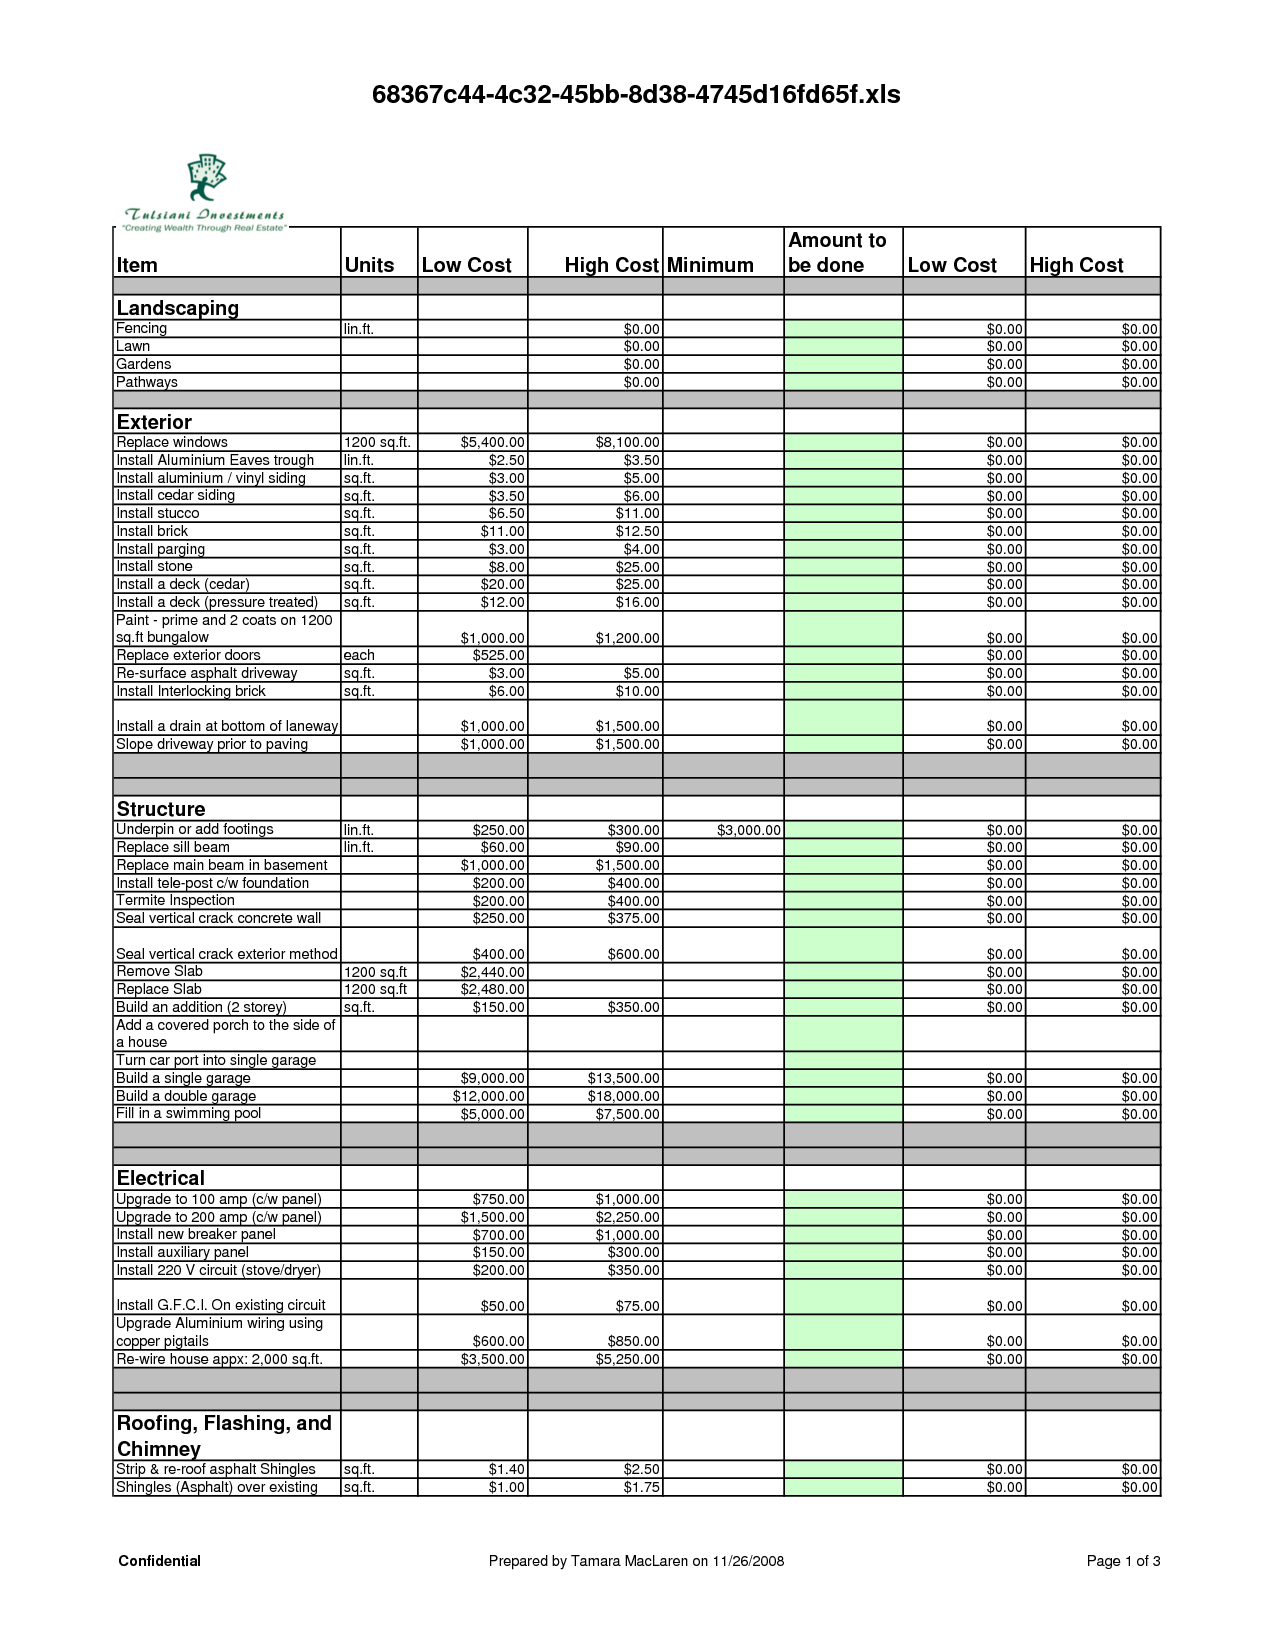 Excel Estimating Templates and Estimating Spreadsheets In Excel Free Estimating Spreadsheet